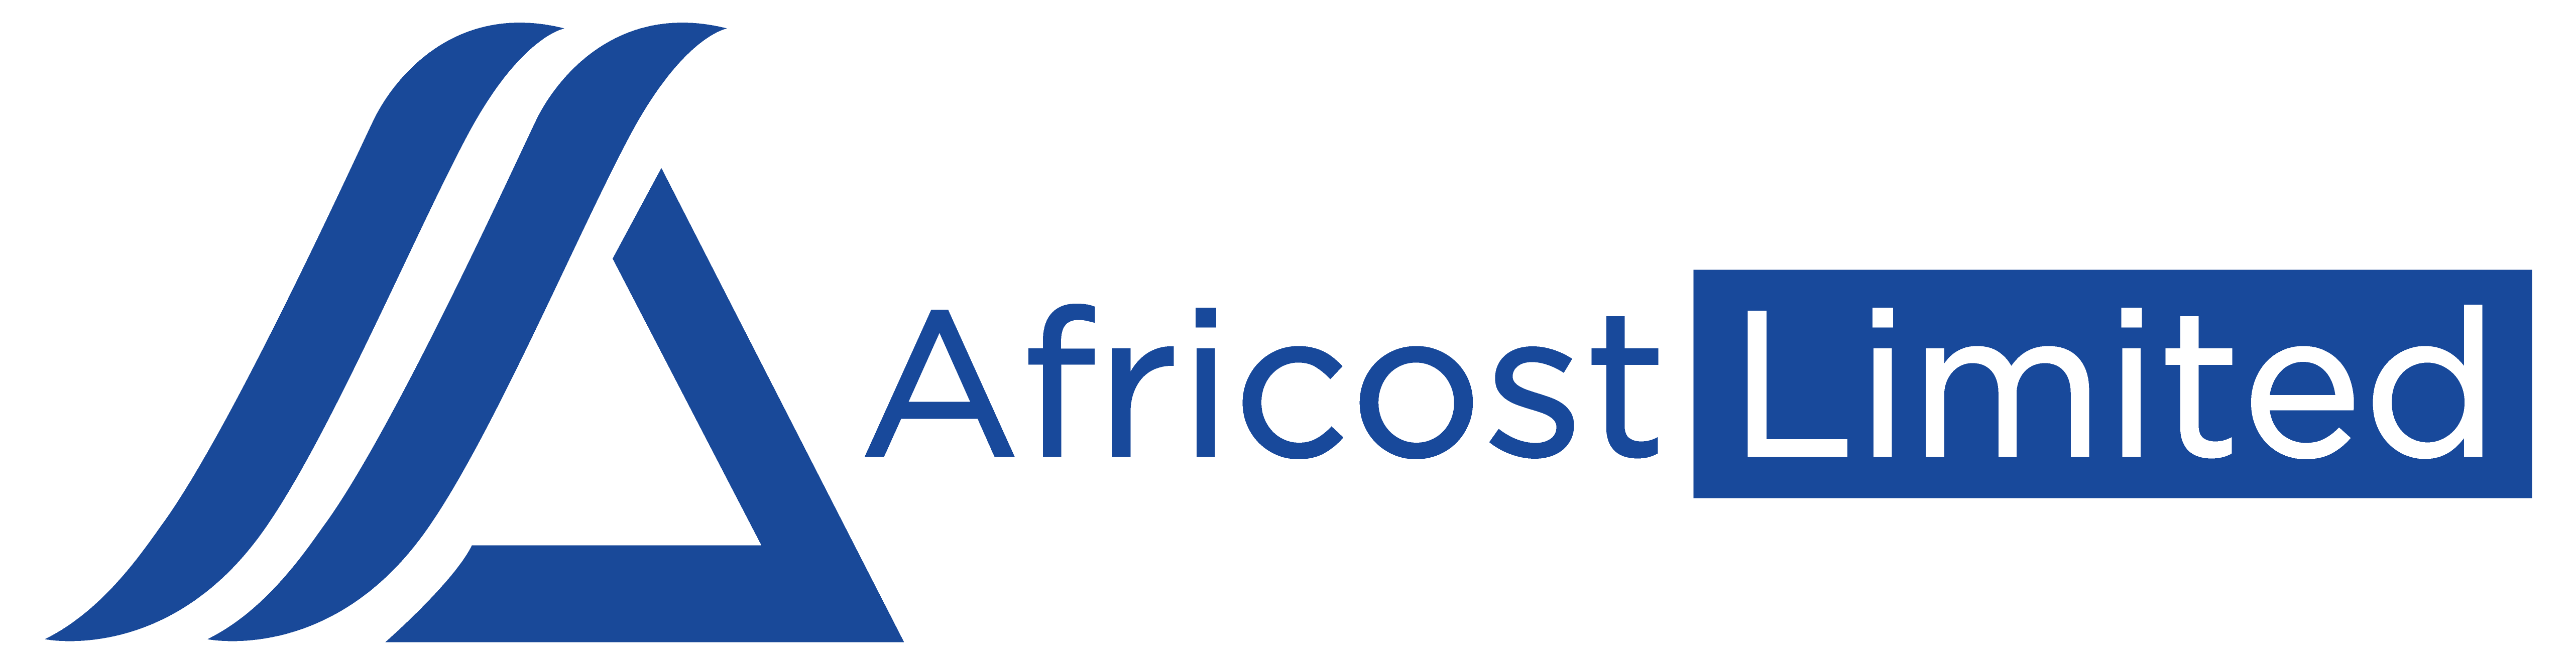 Africost Limited